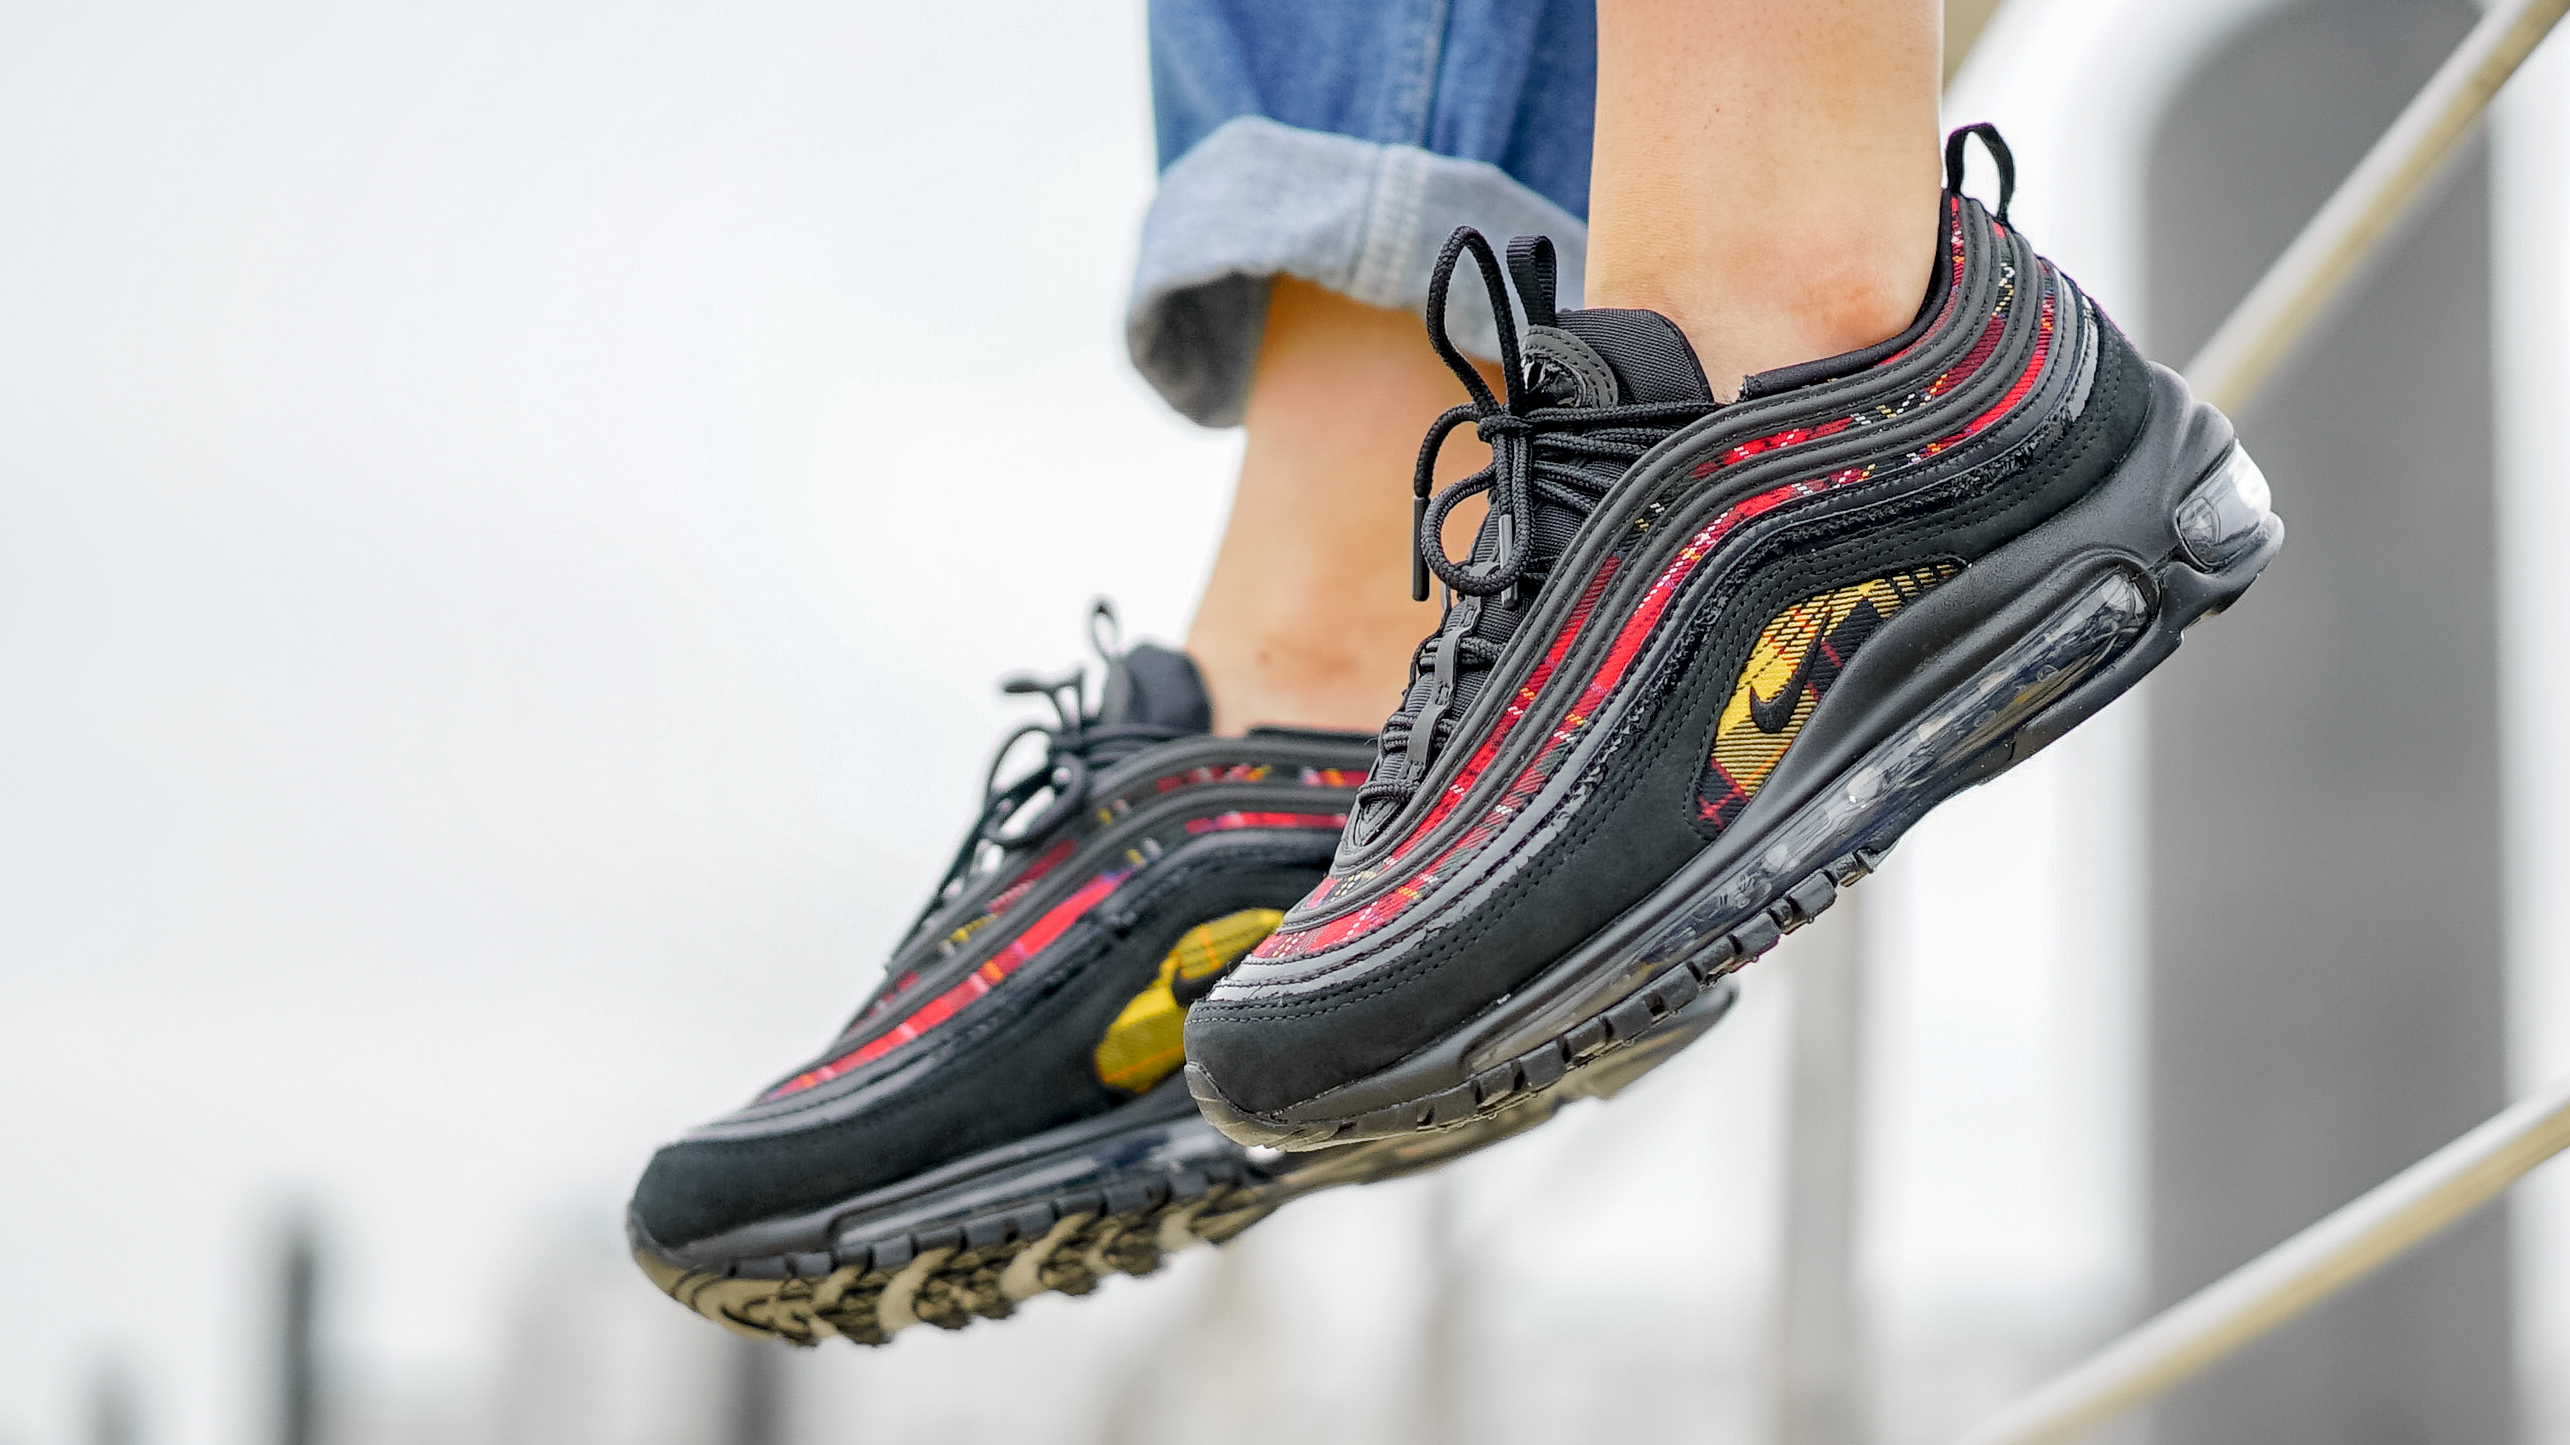 8052b25bb06a An Exclusive On Foot Look At Nike s Air Max 97